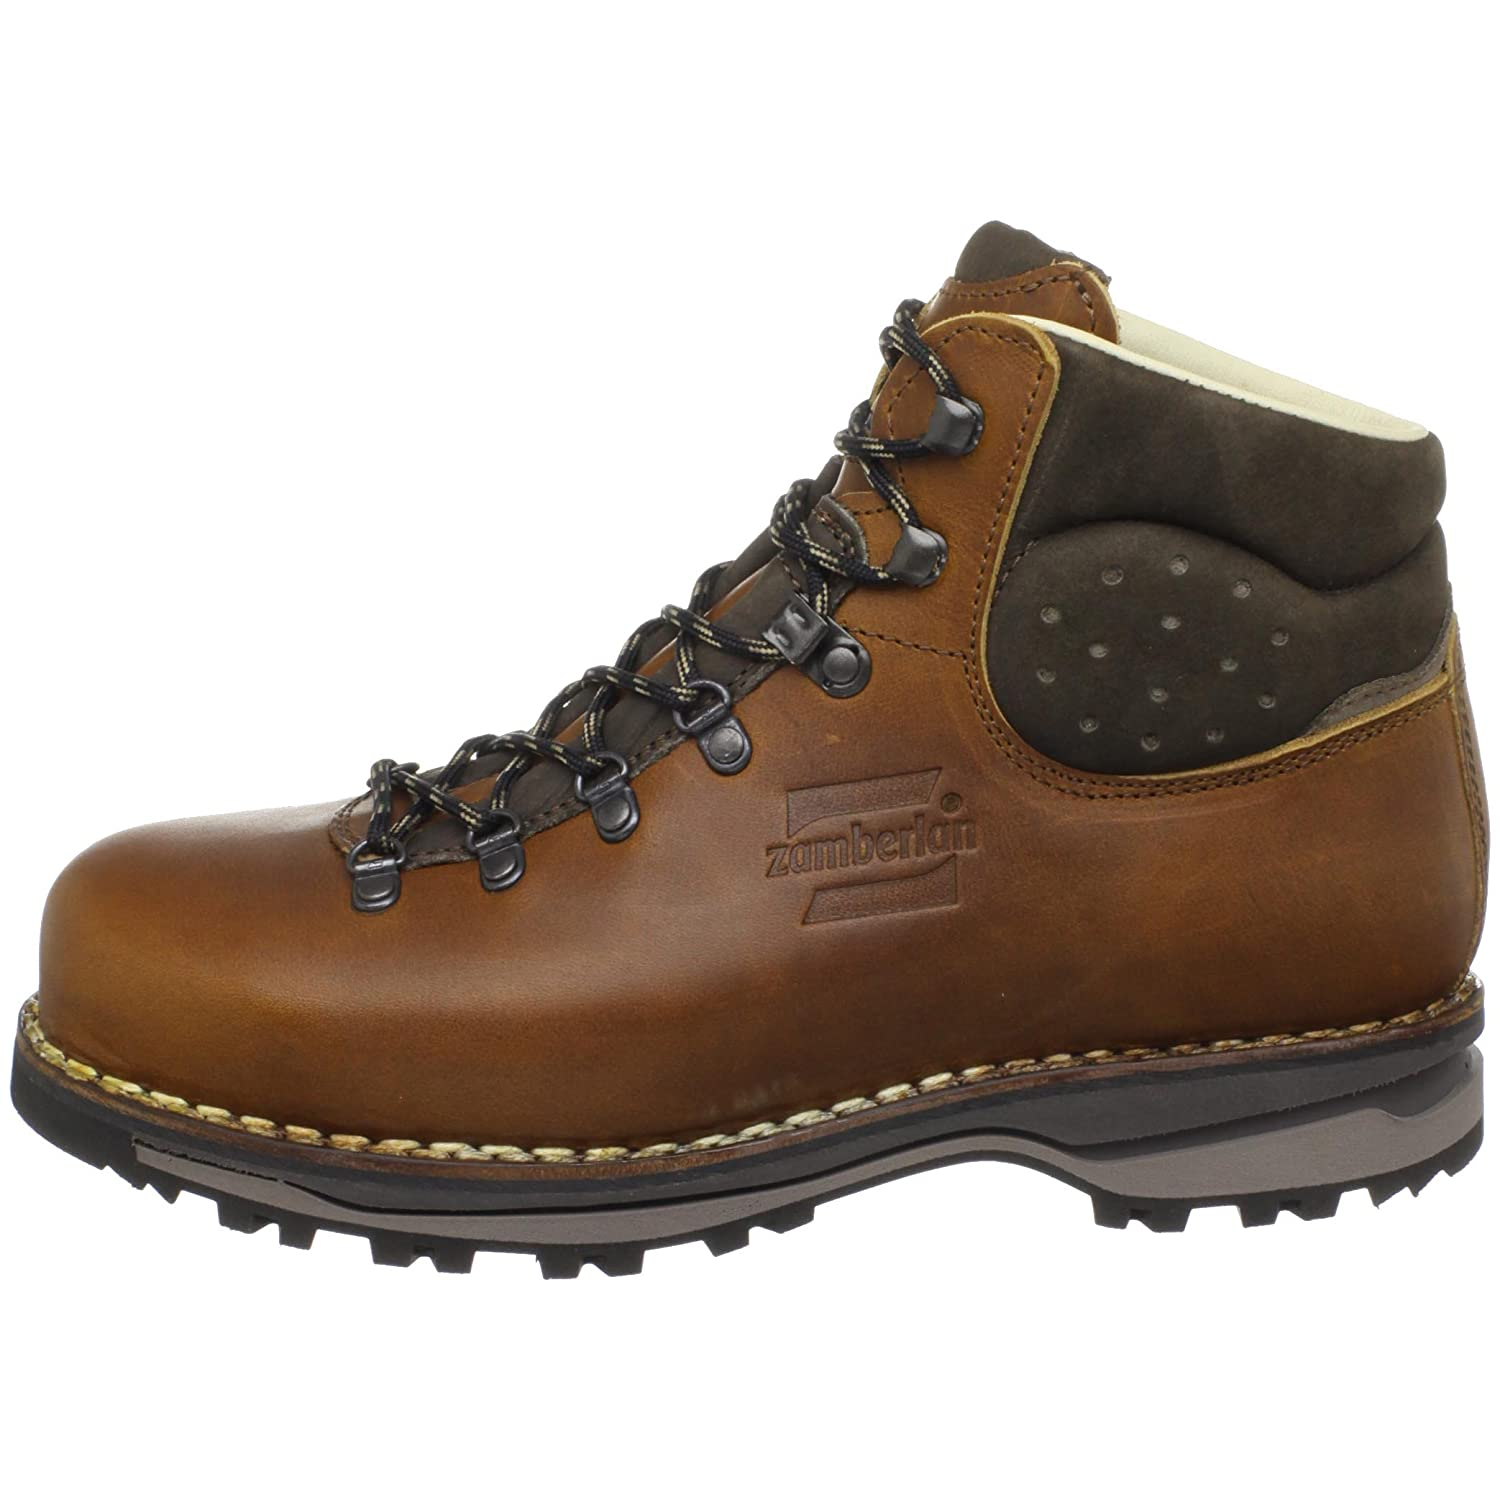 2a70442464a Amazon.com | Zamberlan Men's 1020 Nuvolao NW, Waxed Mustard, US 14 M ...